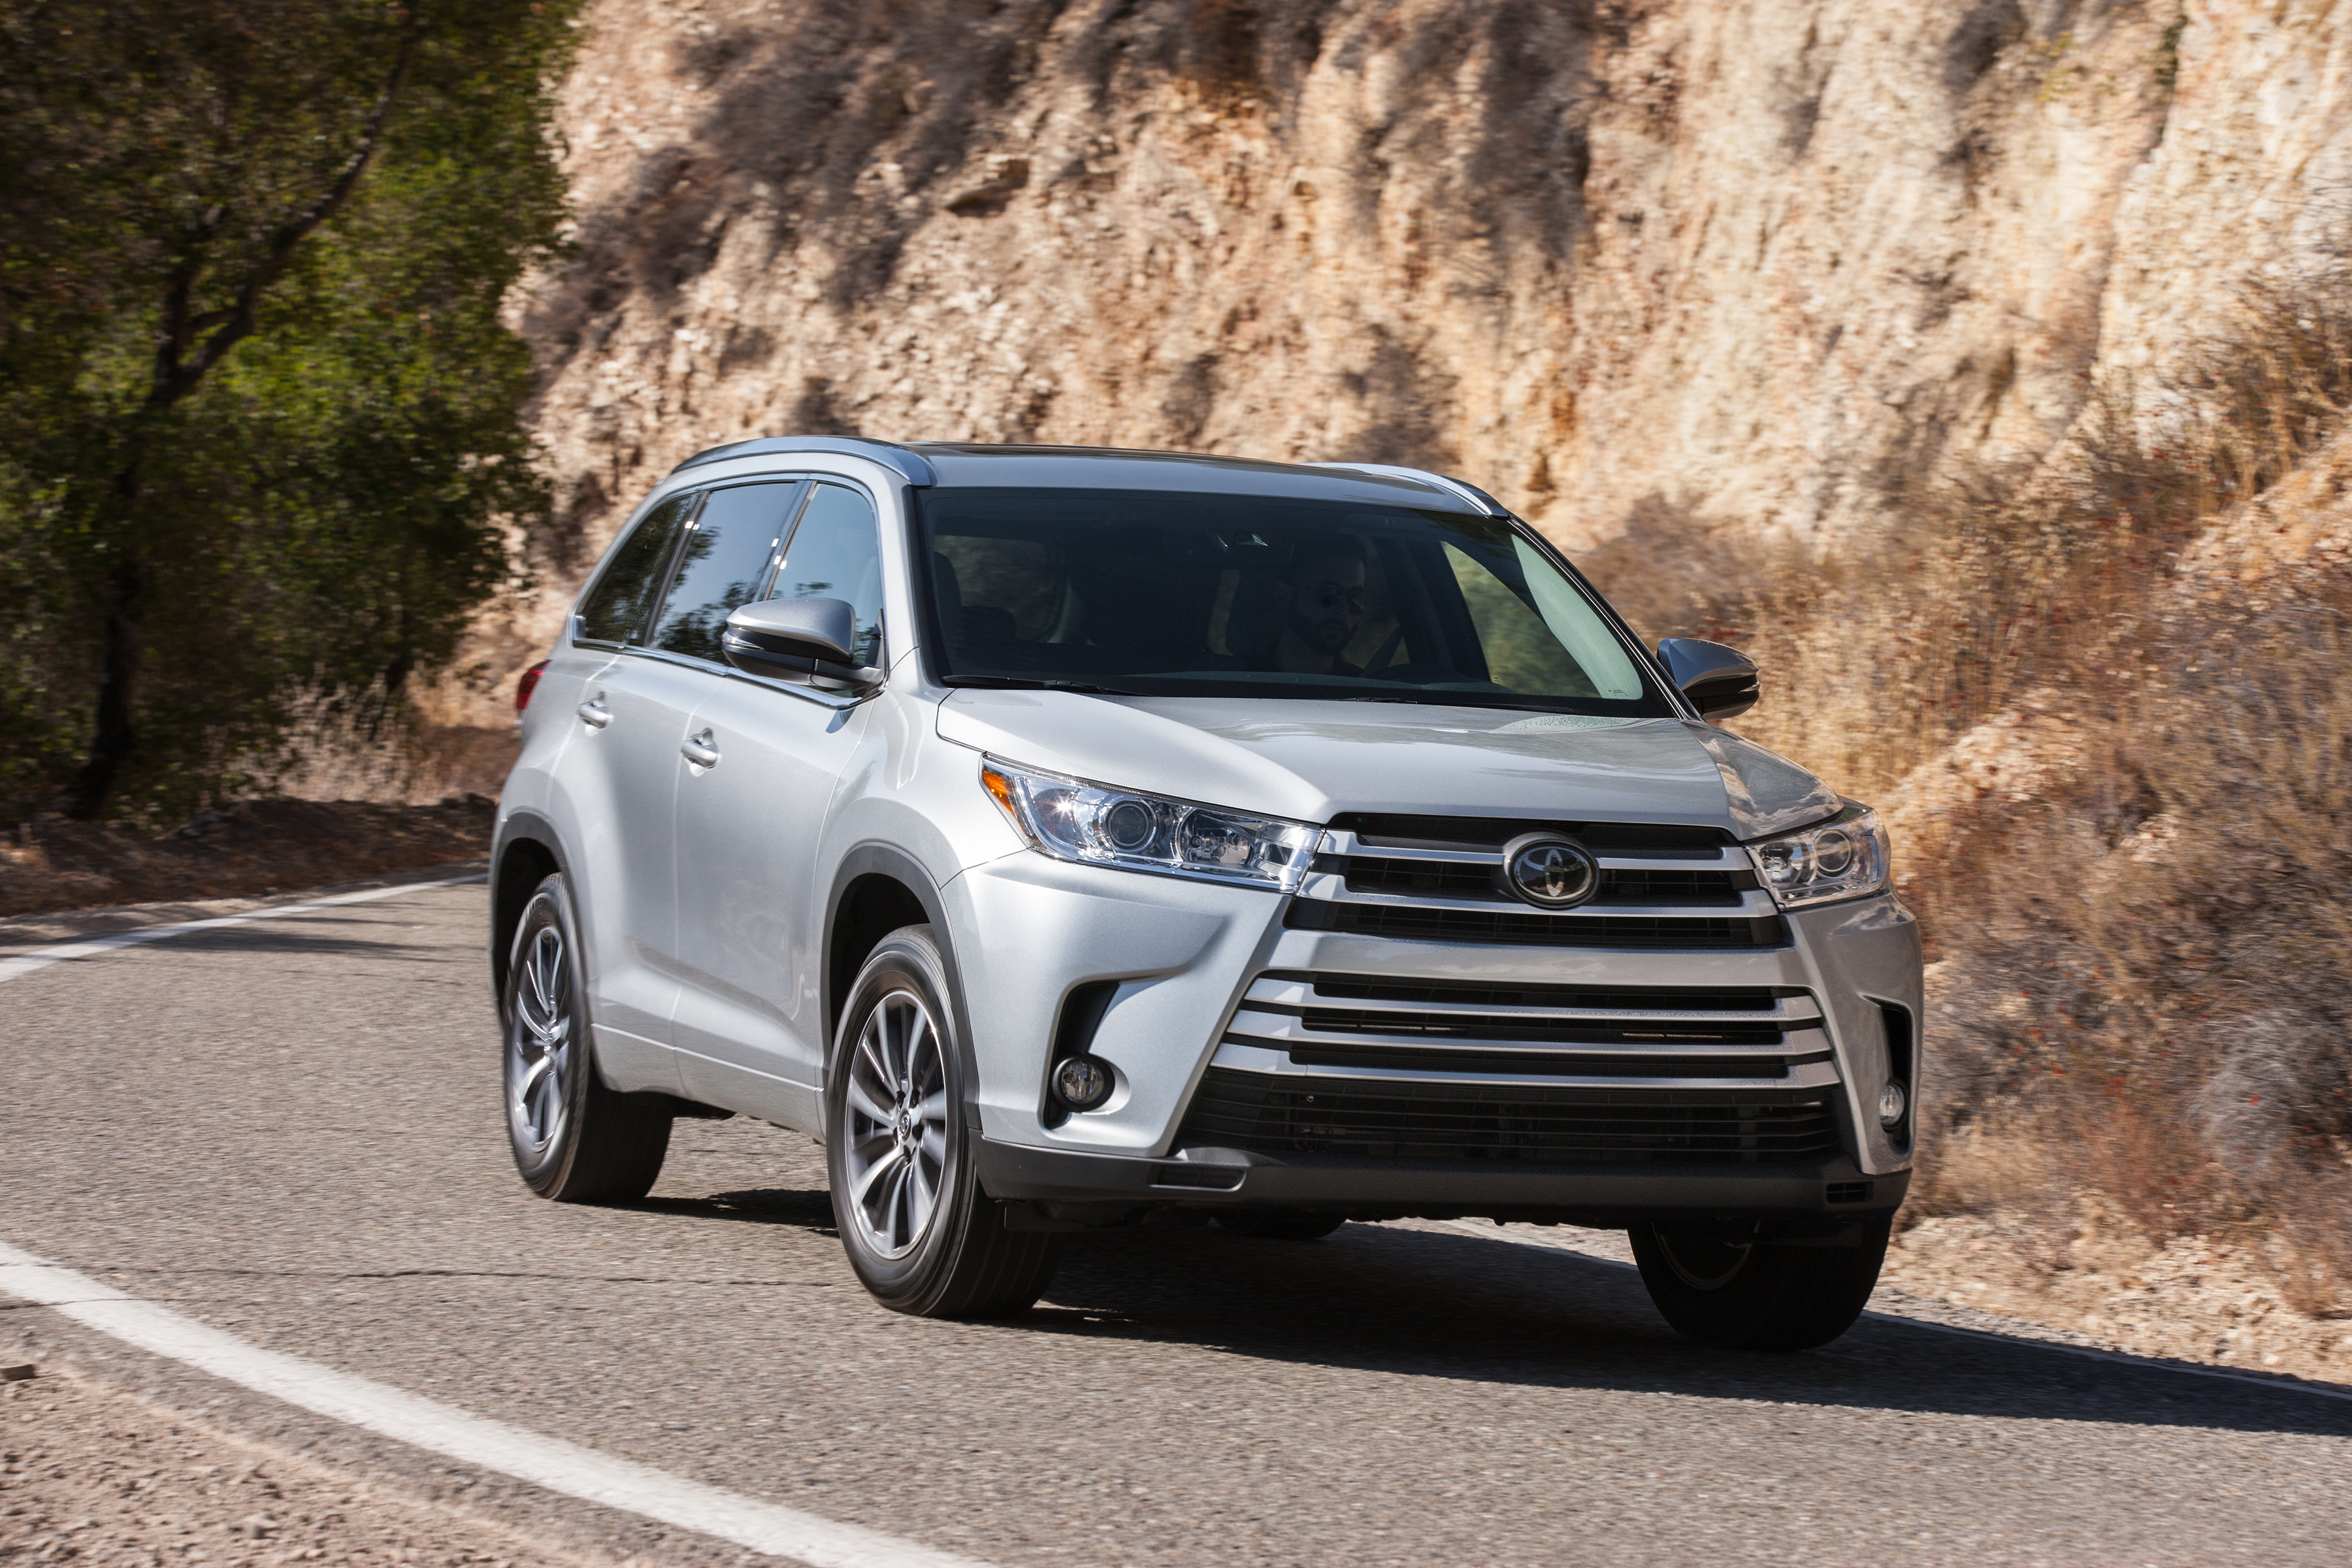 The Year of More' for the 2017 Highlander with More Power, More